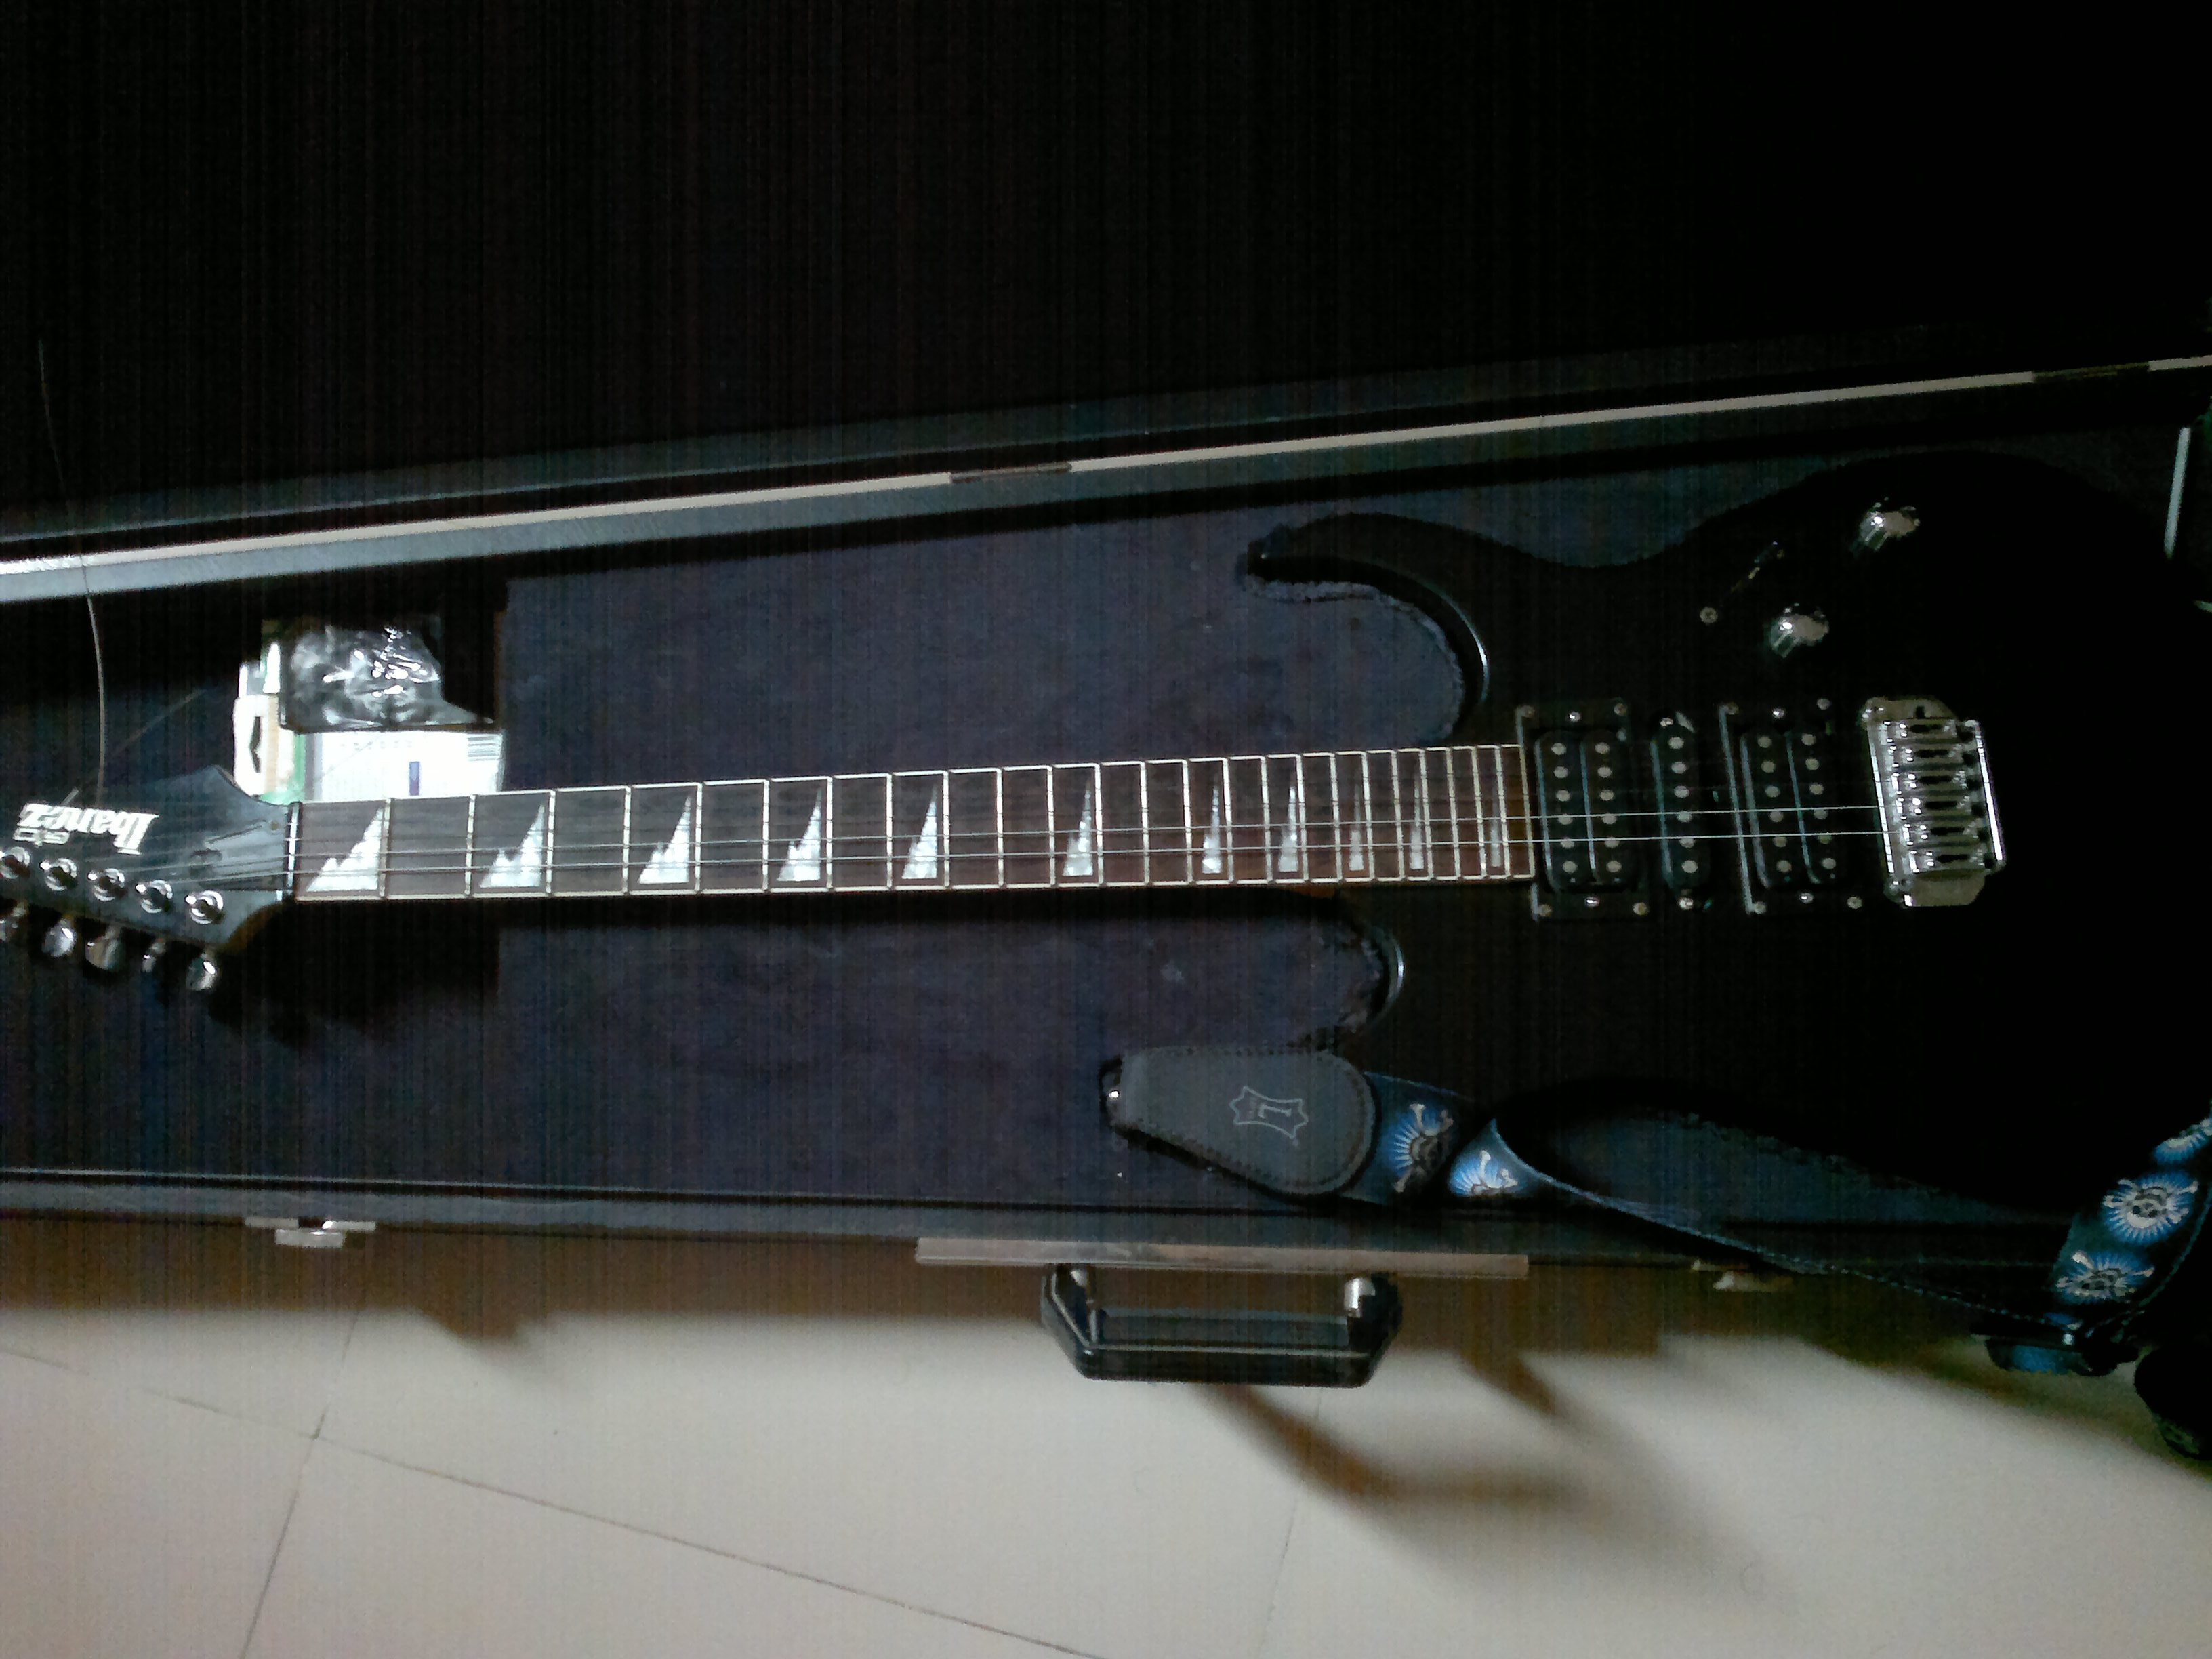 Ibanez Gio line 6 floor pod | ClickBD large image 0